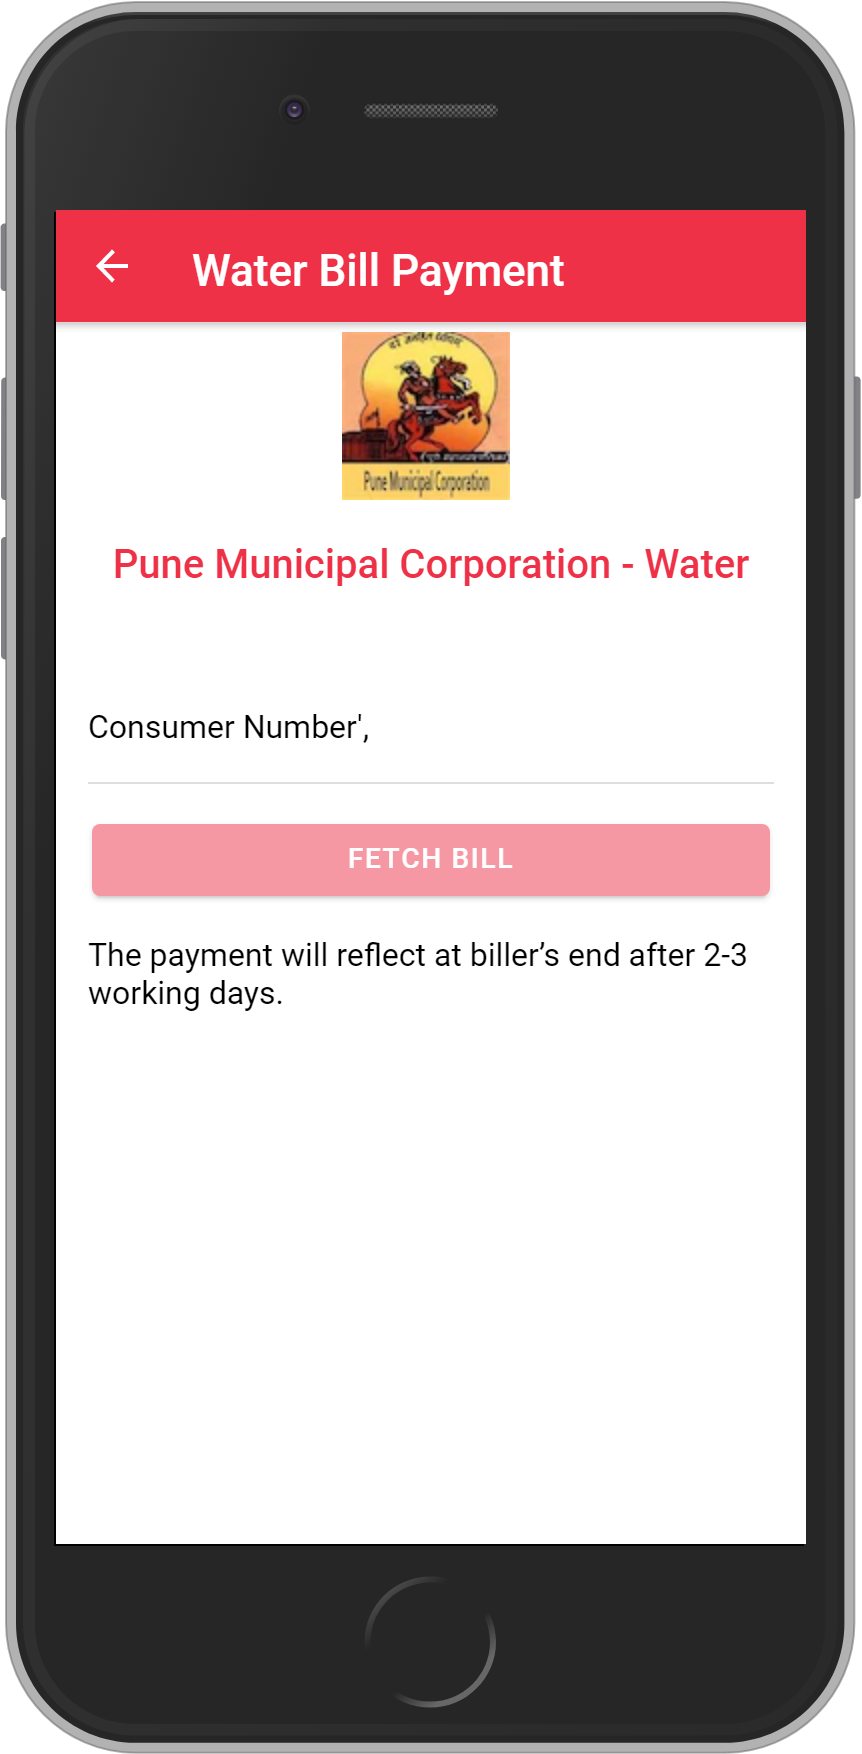 Get UNLIMITED <b>0.1%</b> CASHBACK on Pune Municipal Corporation – Water Bill Payment.